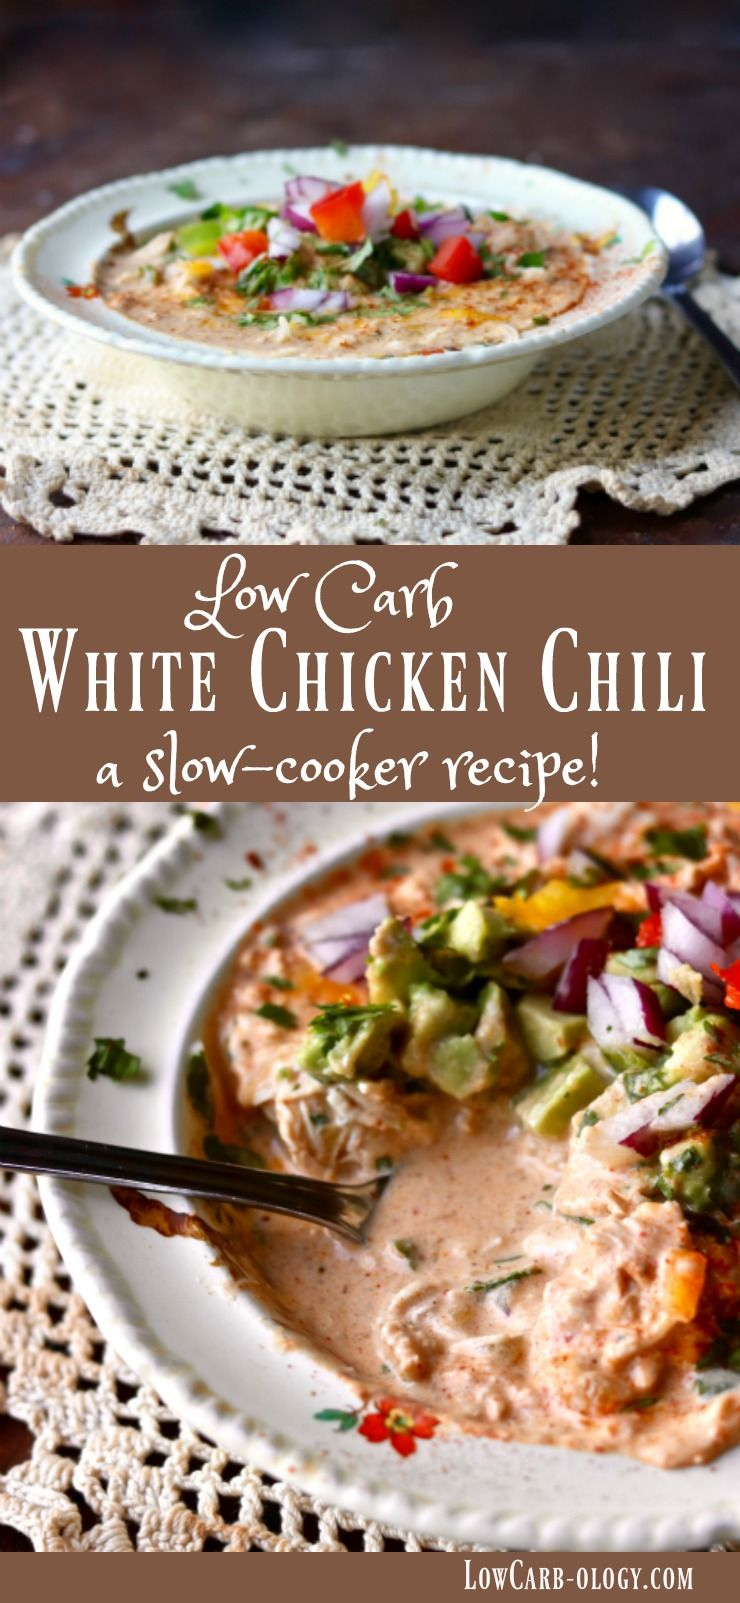 Easy & low carb, this creamy white chicken chili simmers in the slow cooker until you're ready to eat! Just 5.2 net carbs! From Lowcarb-ology.com